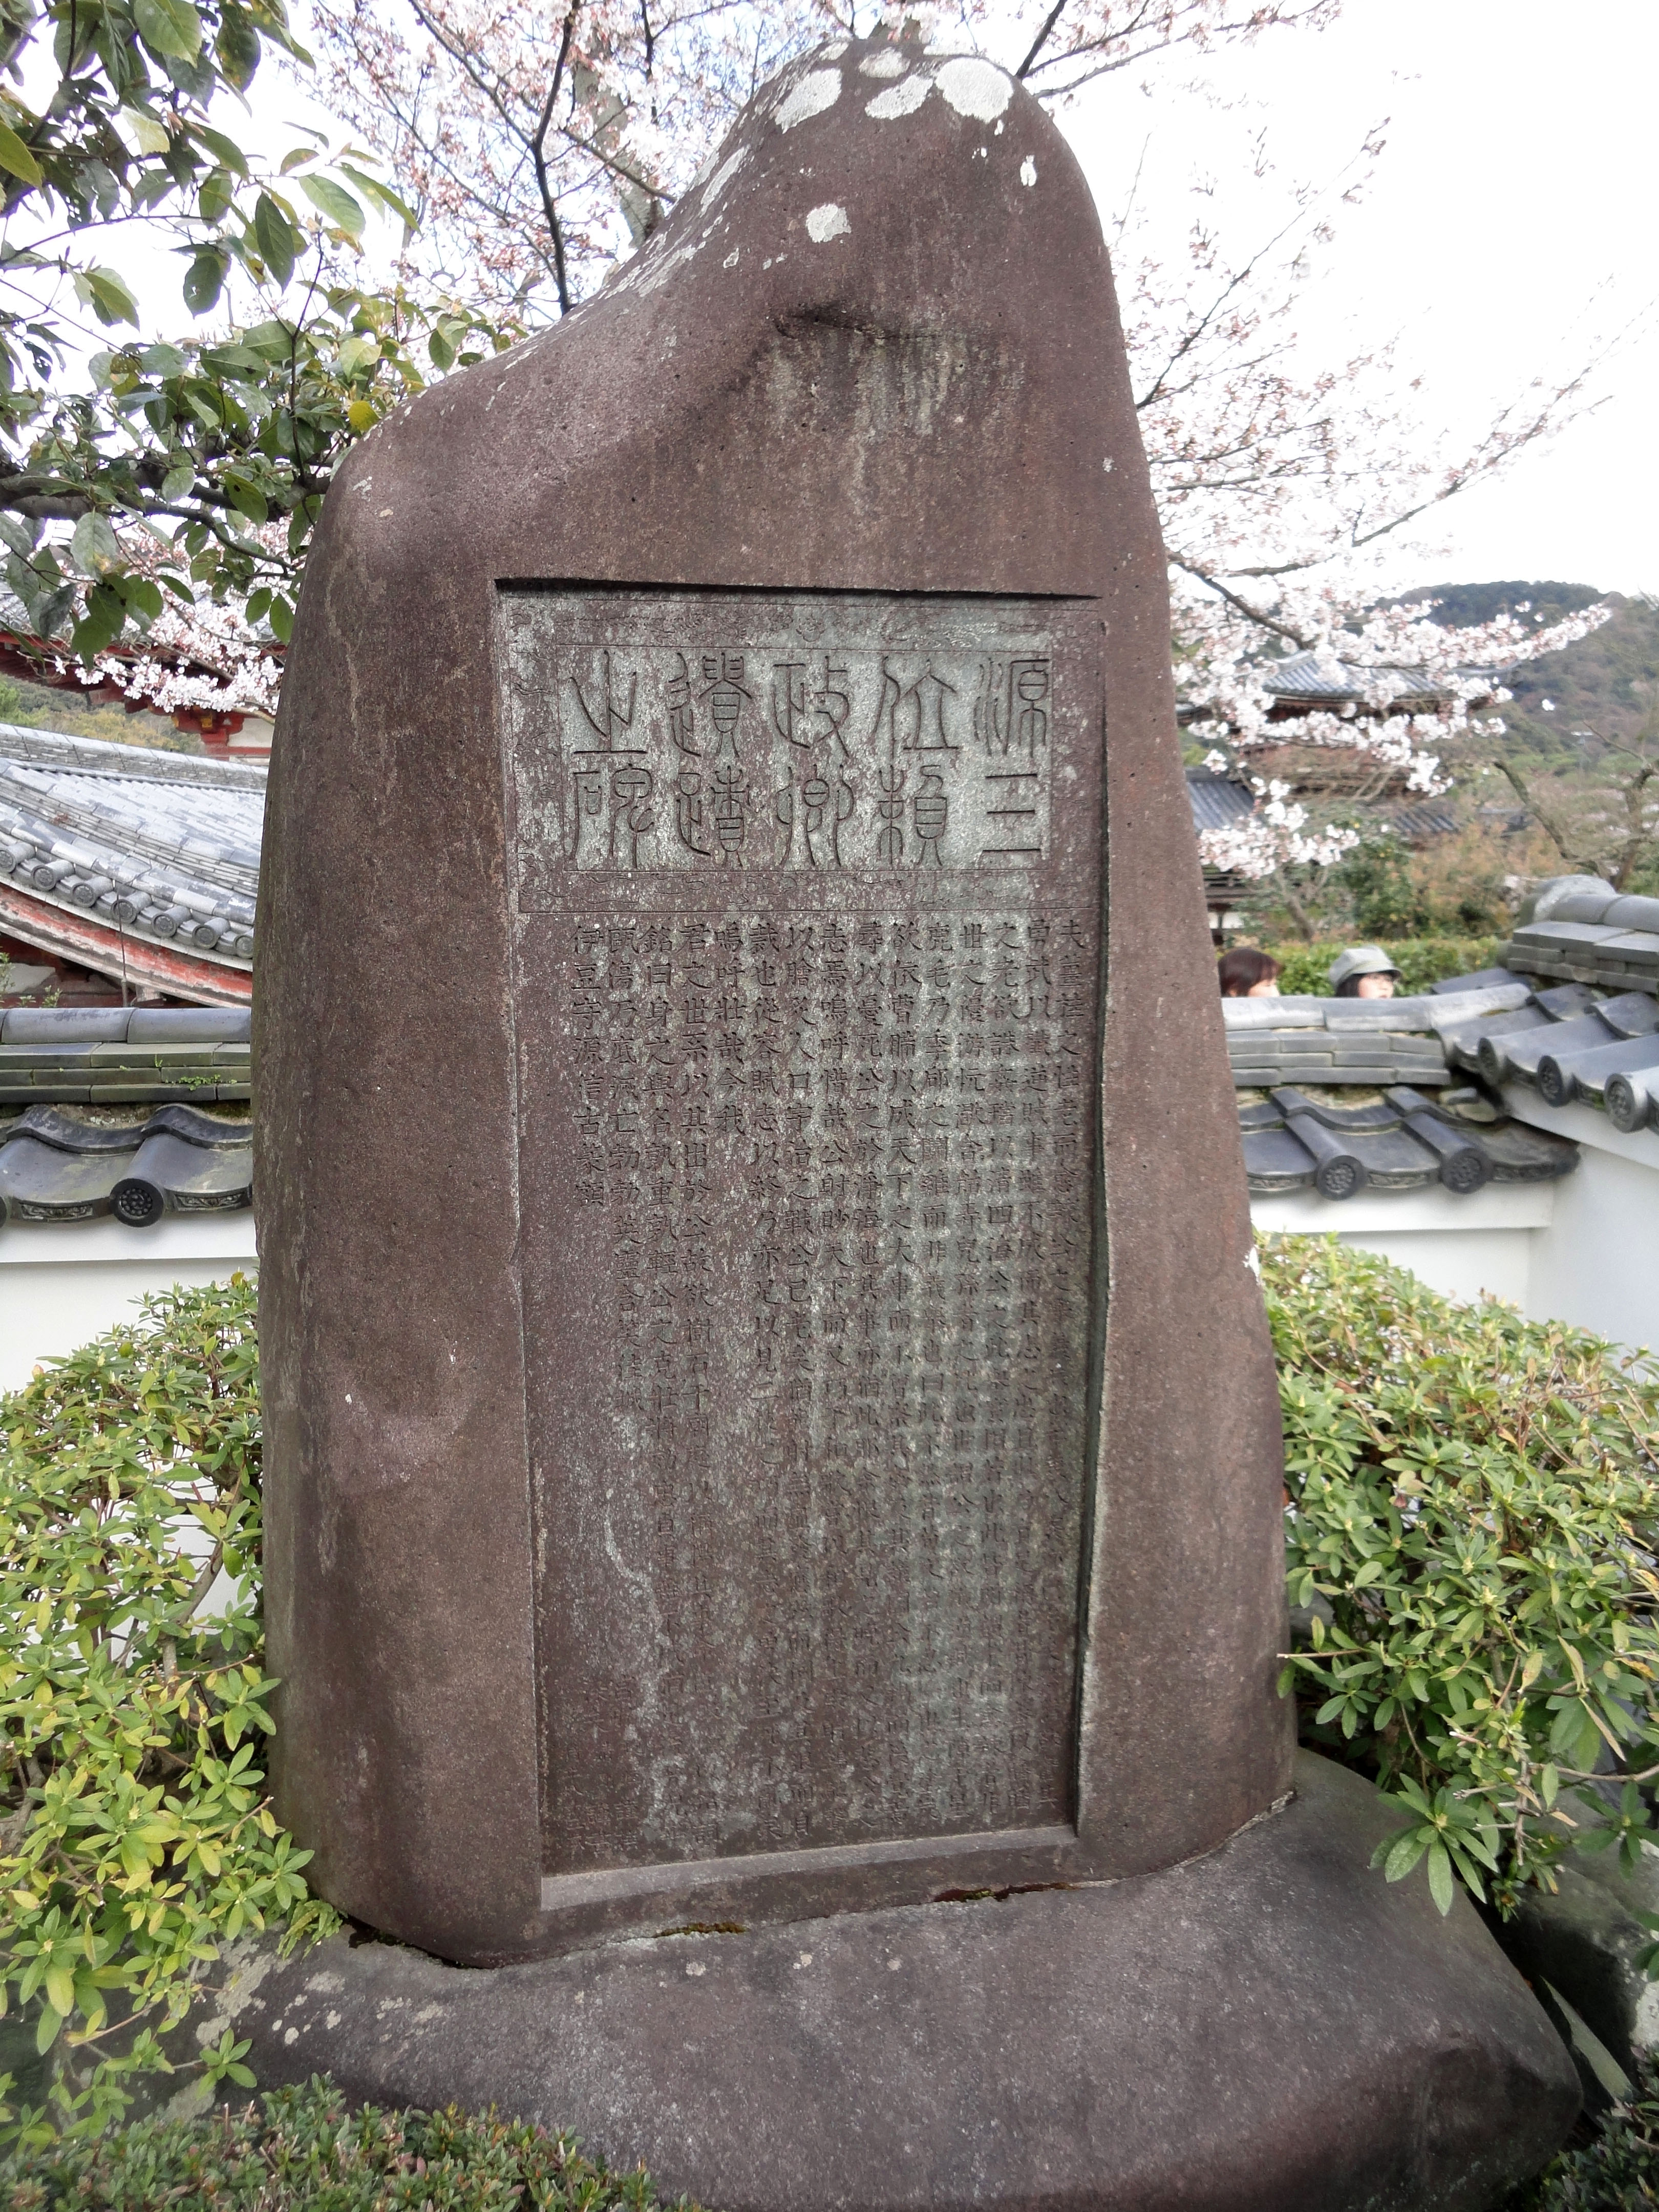 Byodo in Buddhist temple stone plaque in the city of Uji in Kyoto Prefecture Japan 01